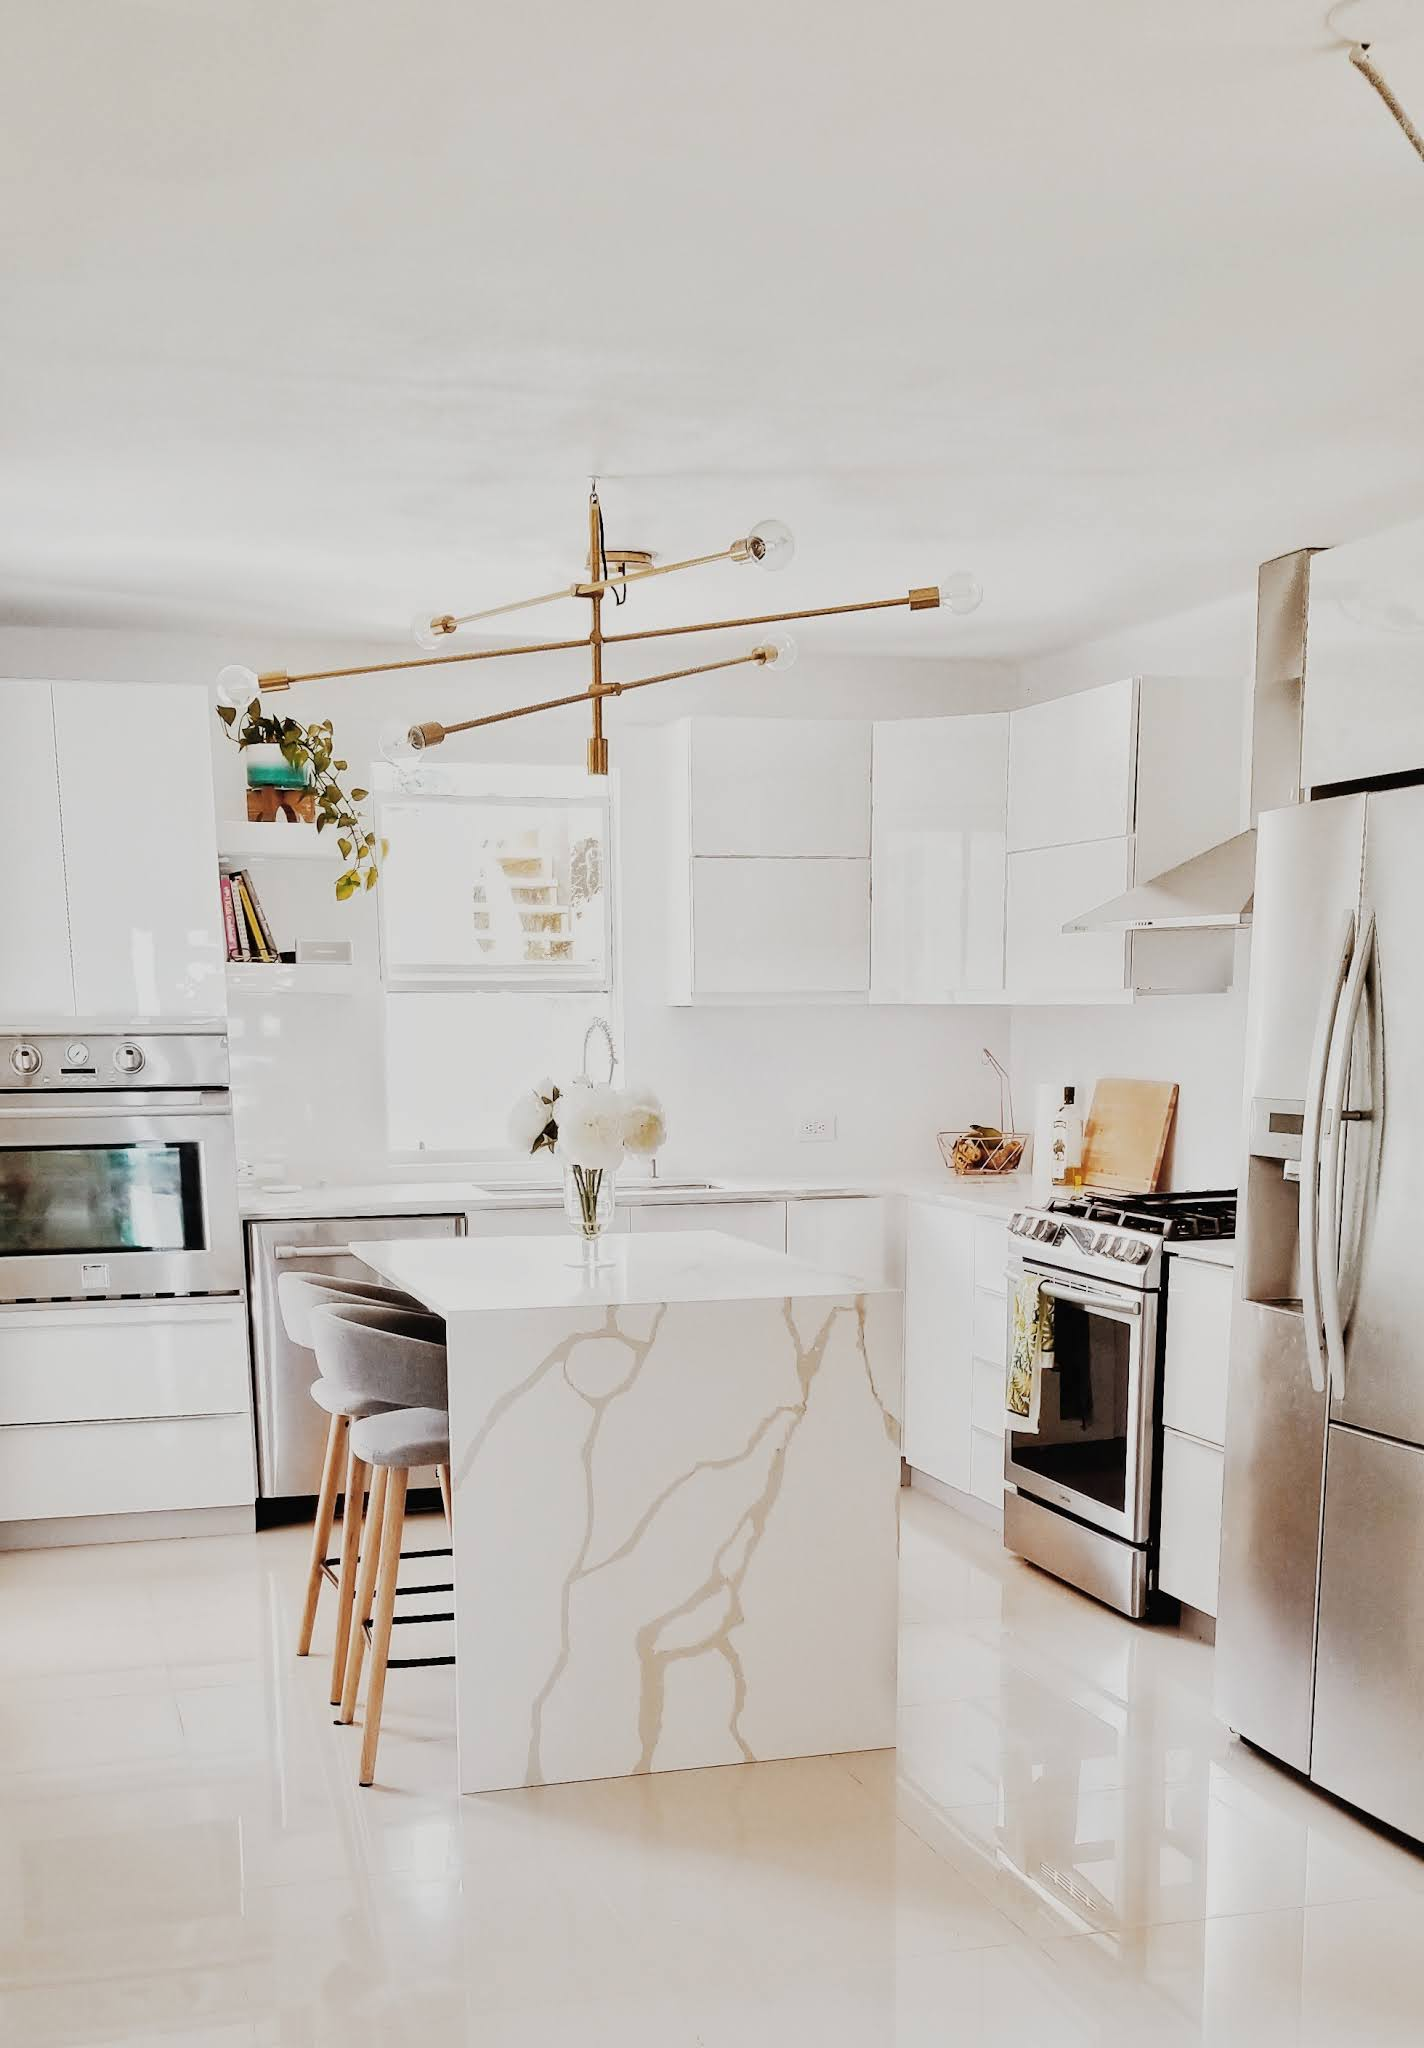 10 Tricks to Make Your Kitchen Look Expensive on Any Budget